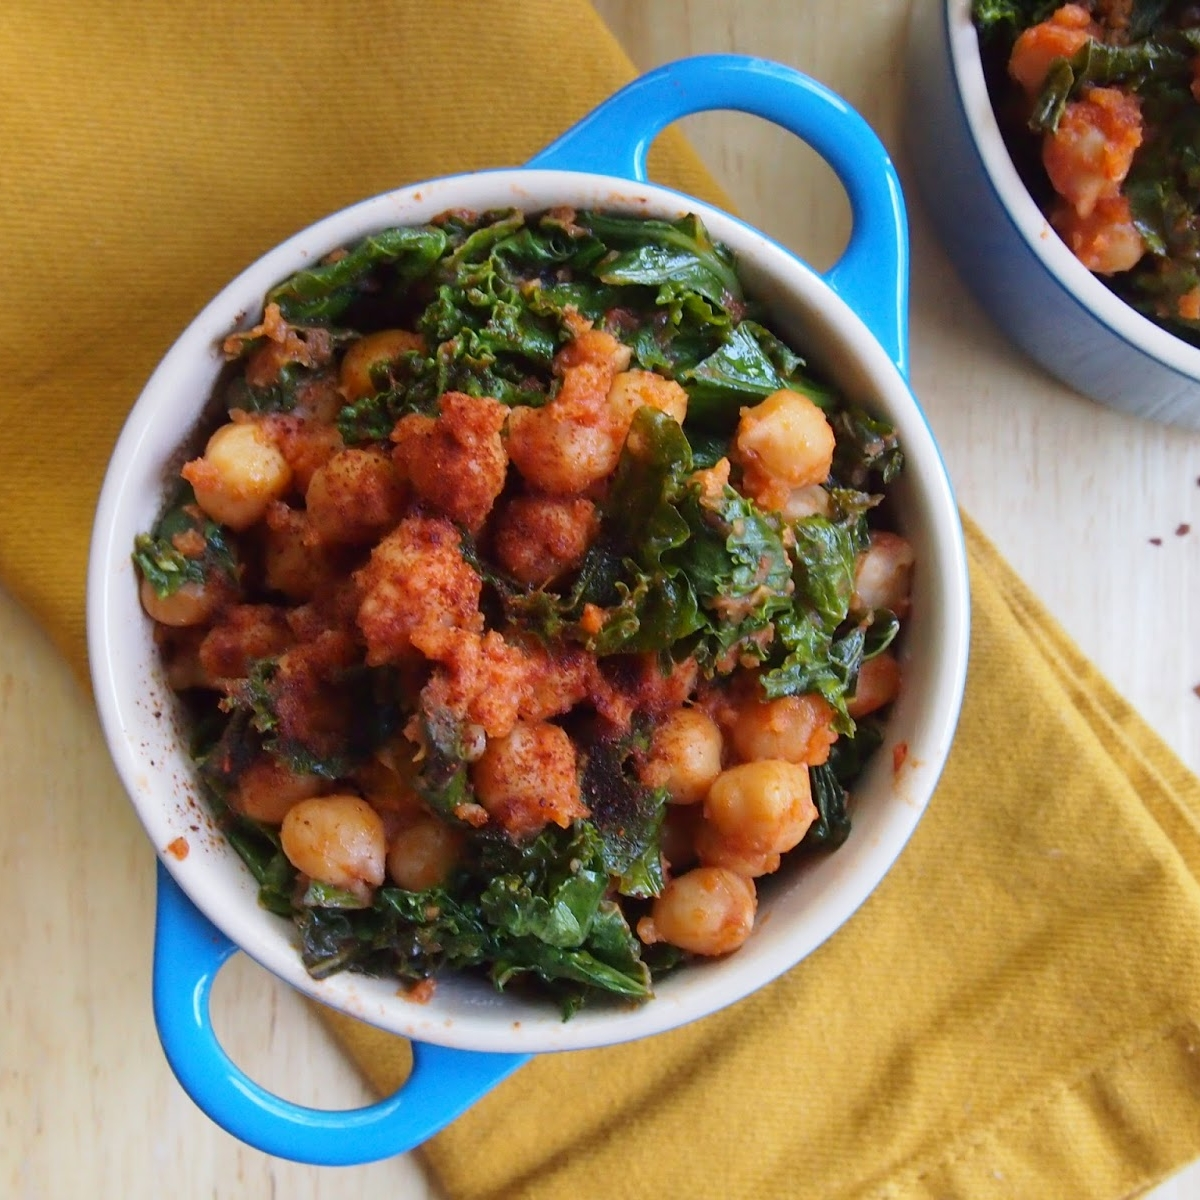 Spanish Chickpeas and Greens